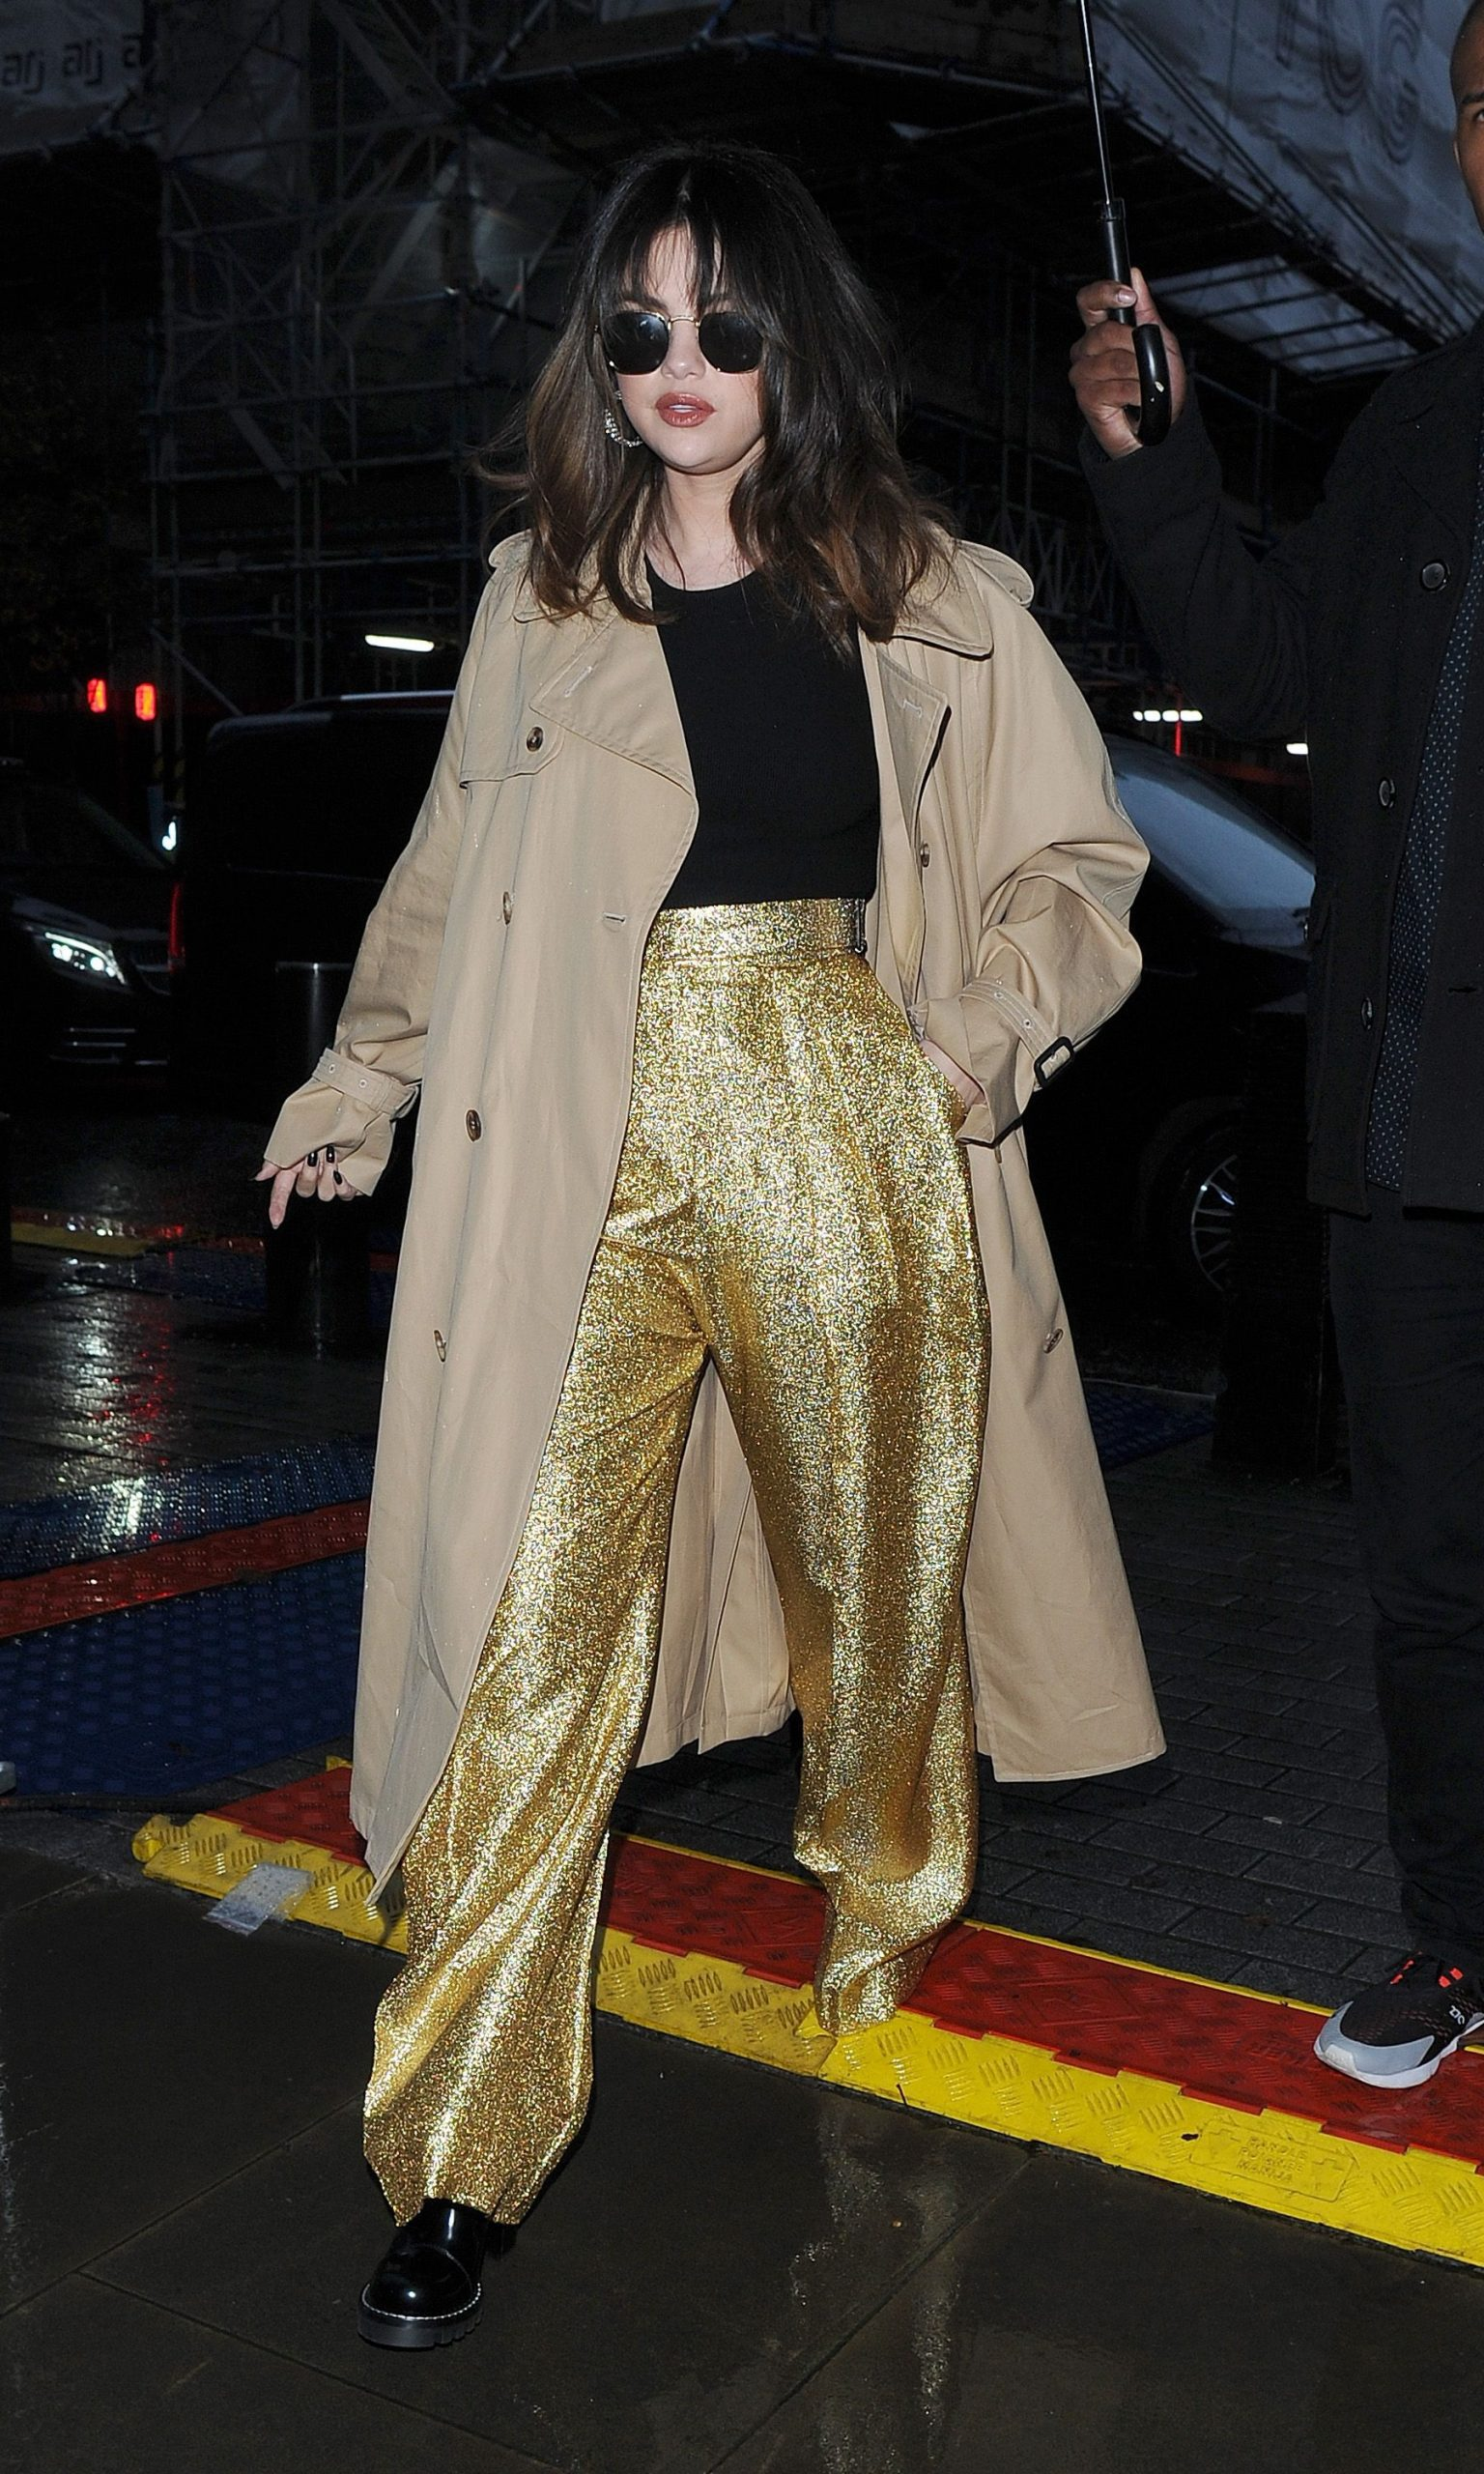 Selena Gomez leaves her hotel, and arrives at the Radio 1 studios, wearing sparkly gold trousers and a tan coloured coat. She completed the look with a pair of sunglasses